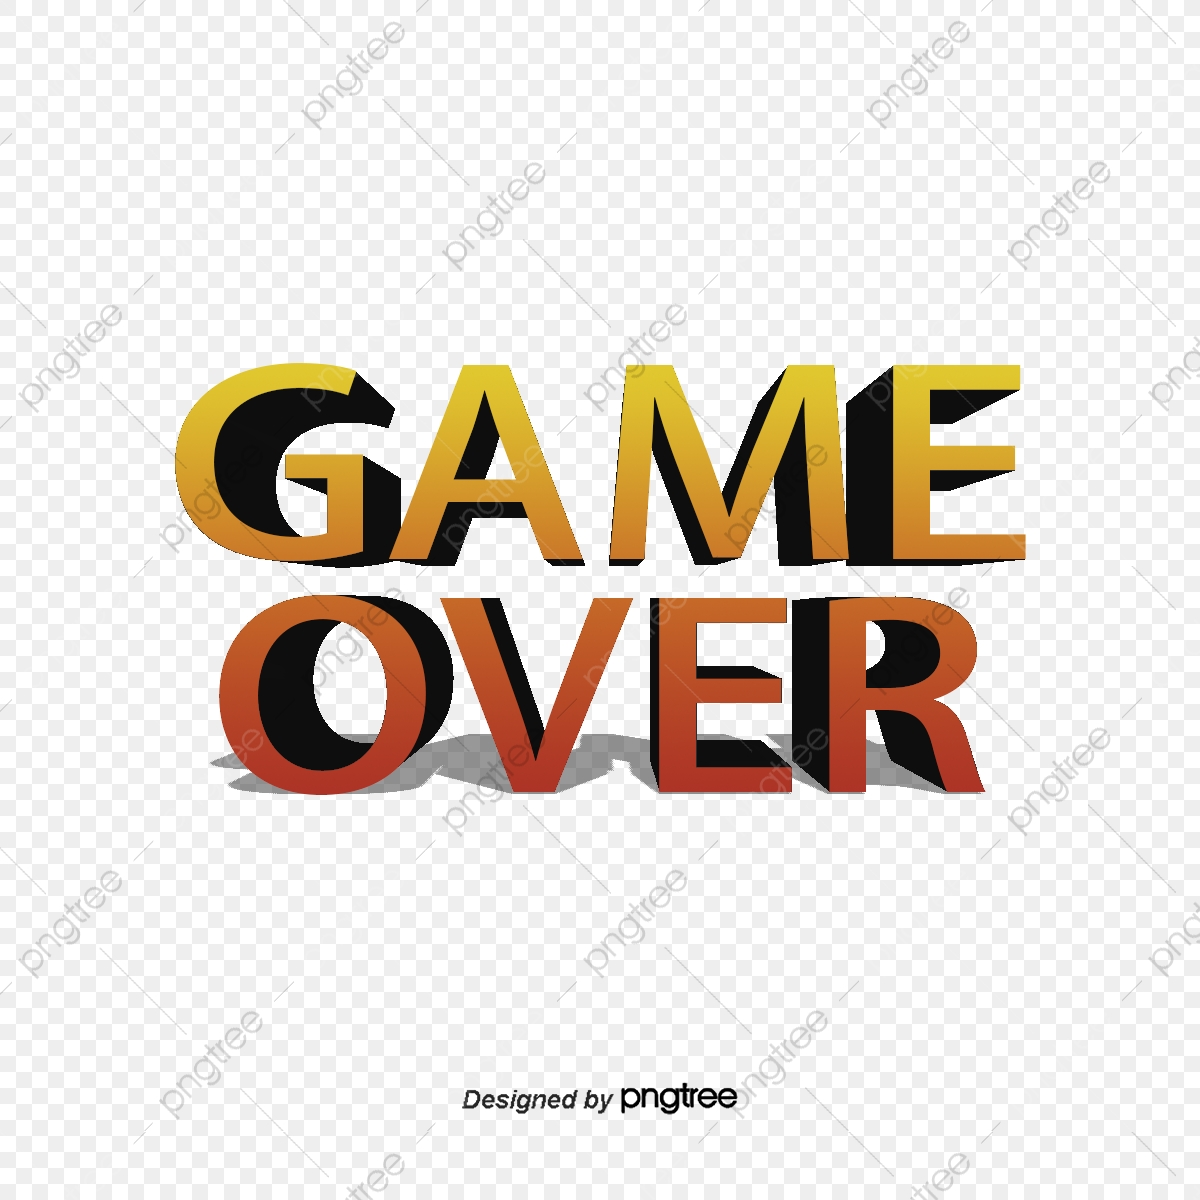 Game End Game Over Game Over End Png Transparent Clipart Image And Psd File For Free Download